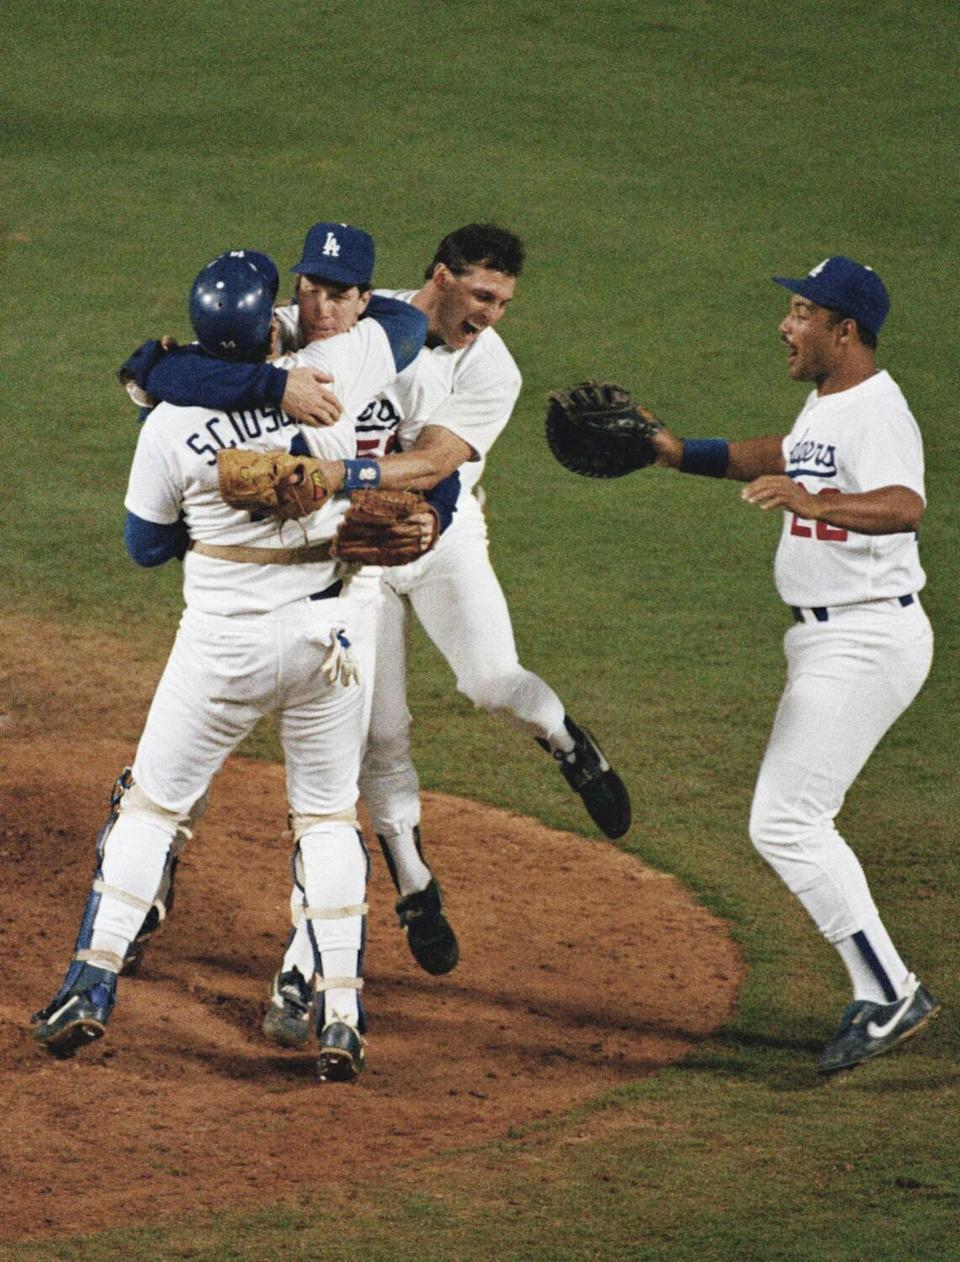 Dodgers pitcher Orel Hershiser, top left, celebrates with catcher Mike Scioscia and teammates Steve Sax and Franklin Stubbs.